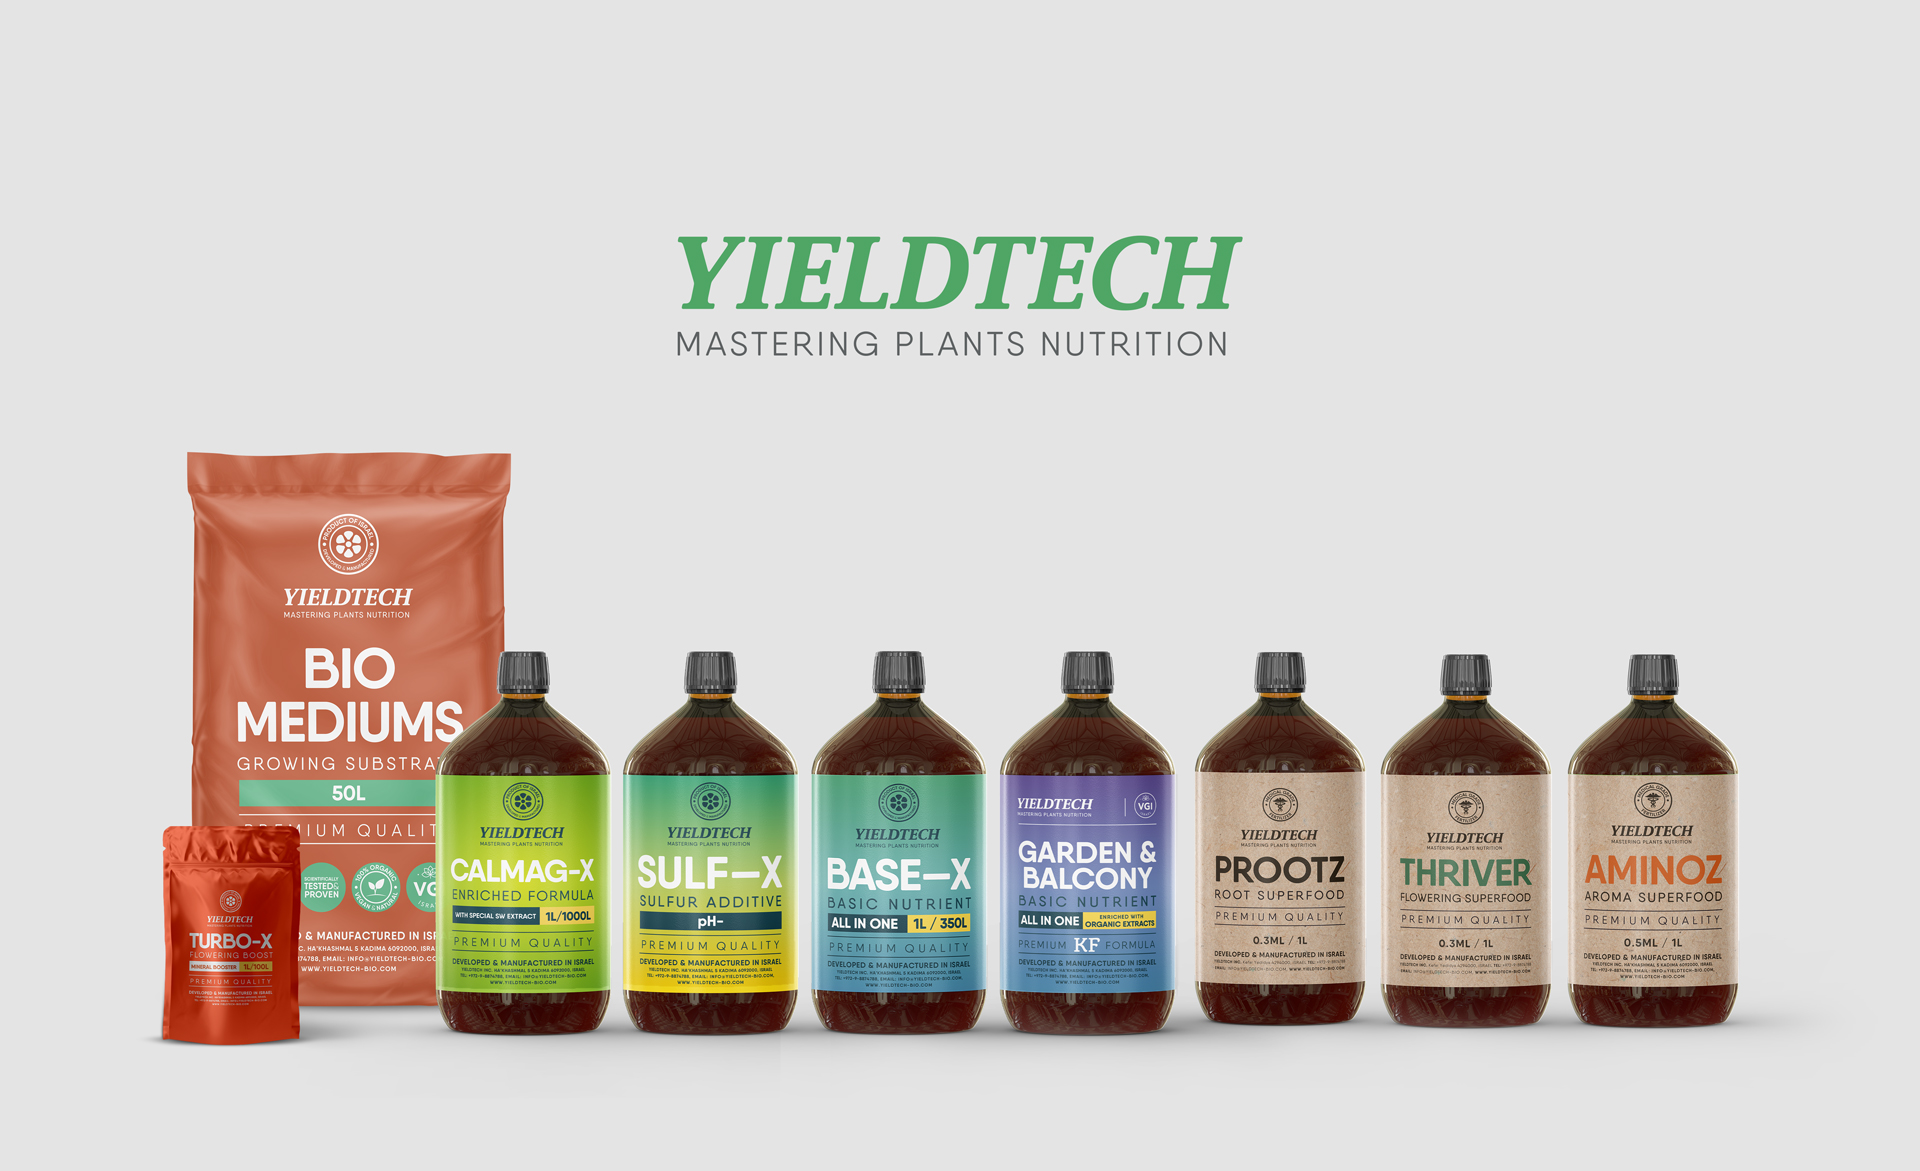 Yieldtech-Products.jpg